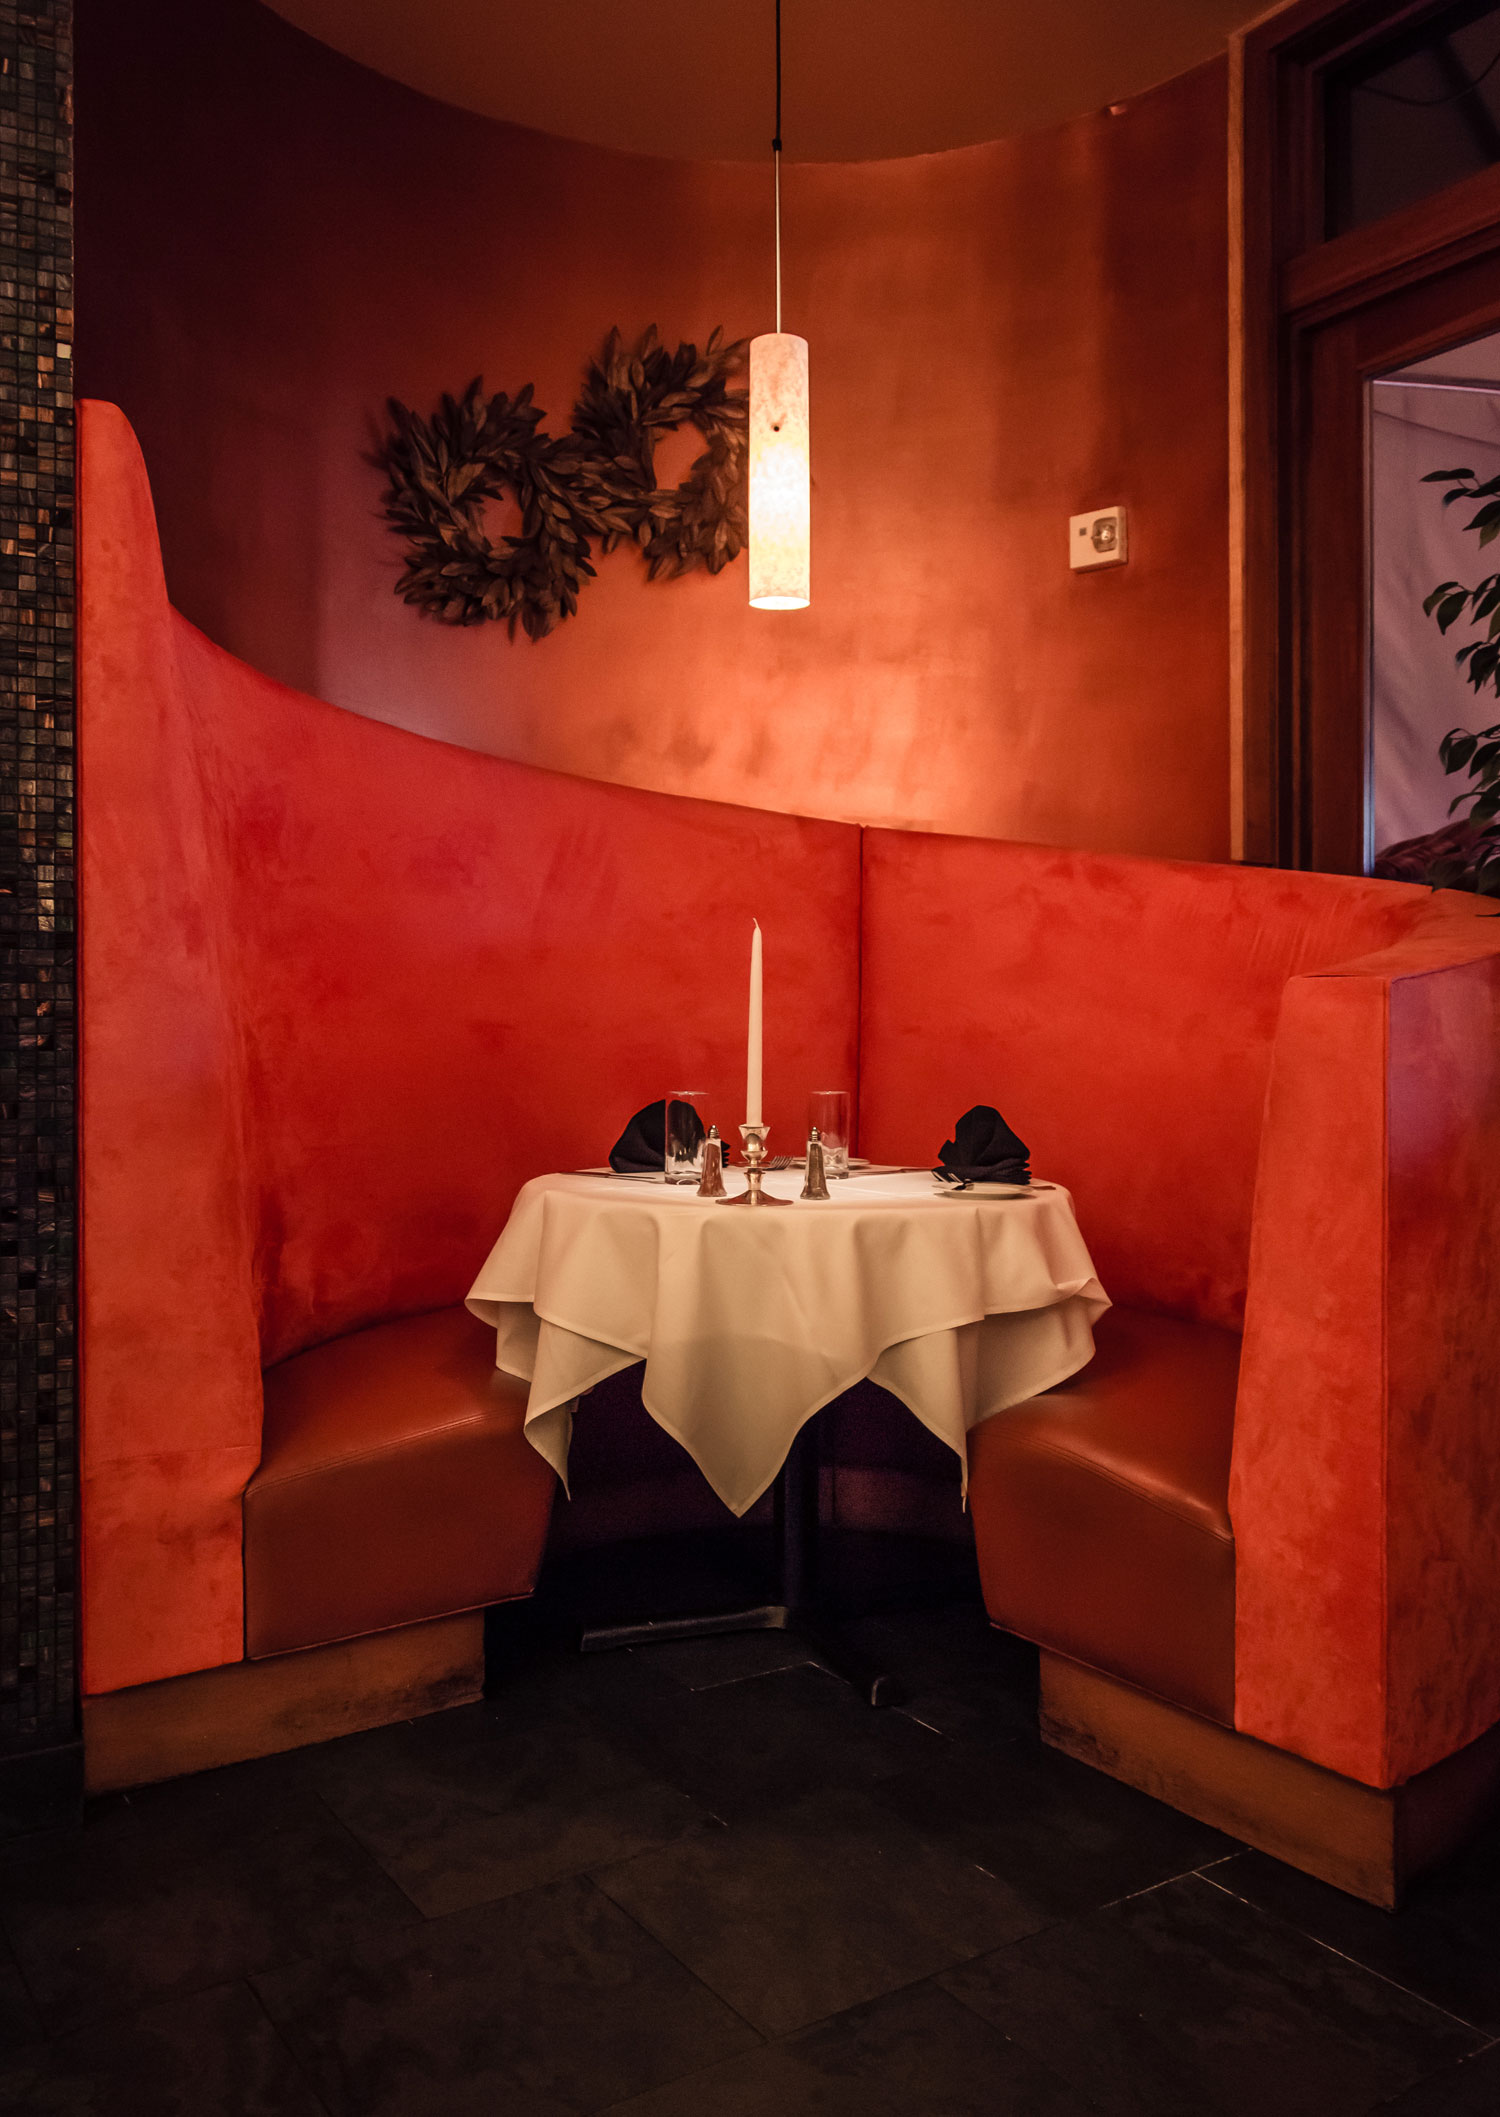 MIGNON-FRENCH-STEAKHOUSE-RESTAURANT-PLANO-MAGAZINE-RED-BOOTH